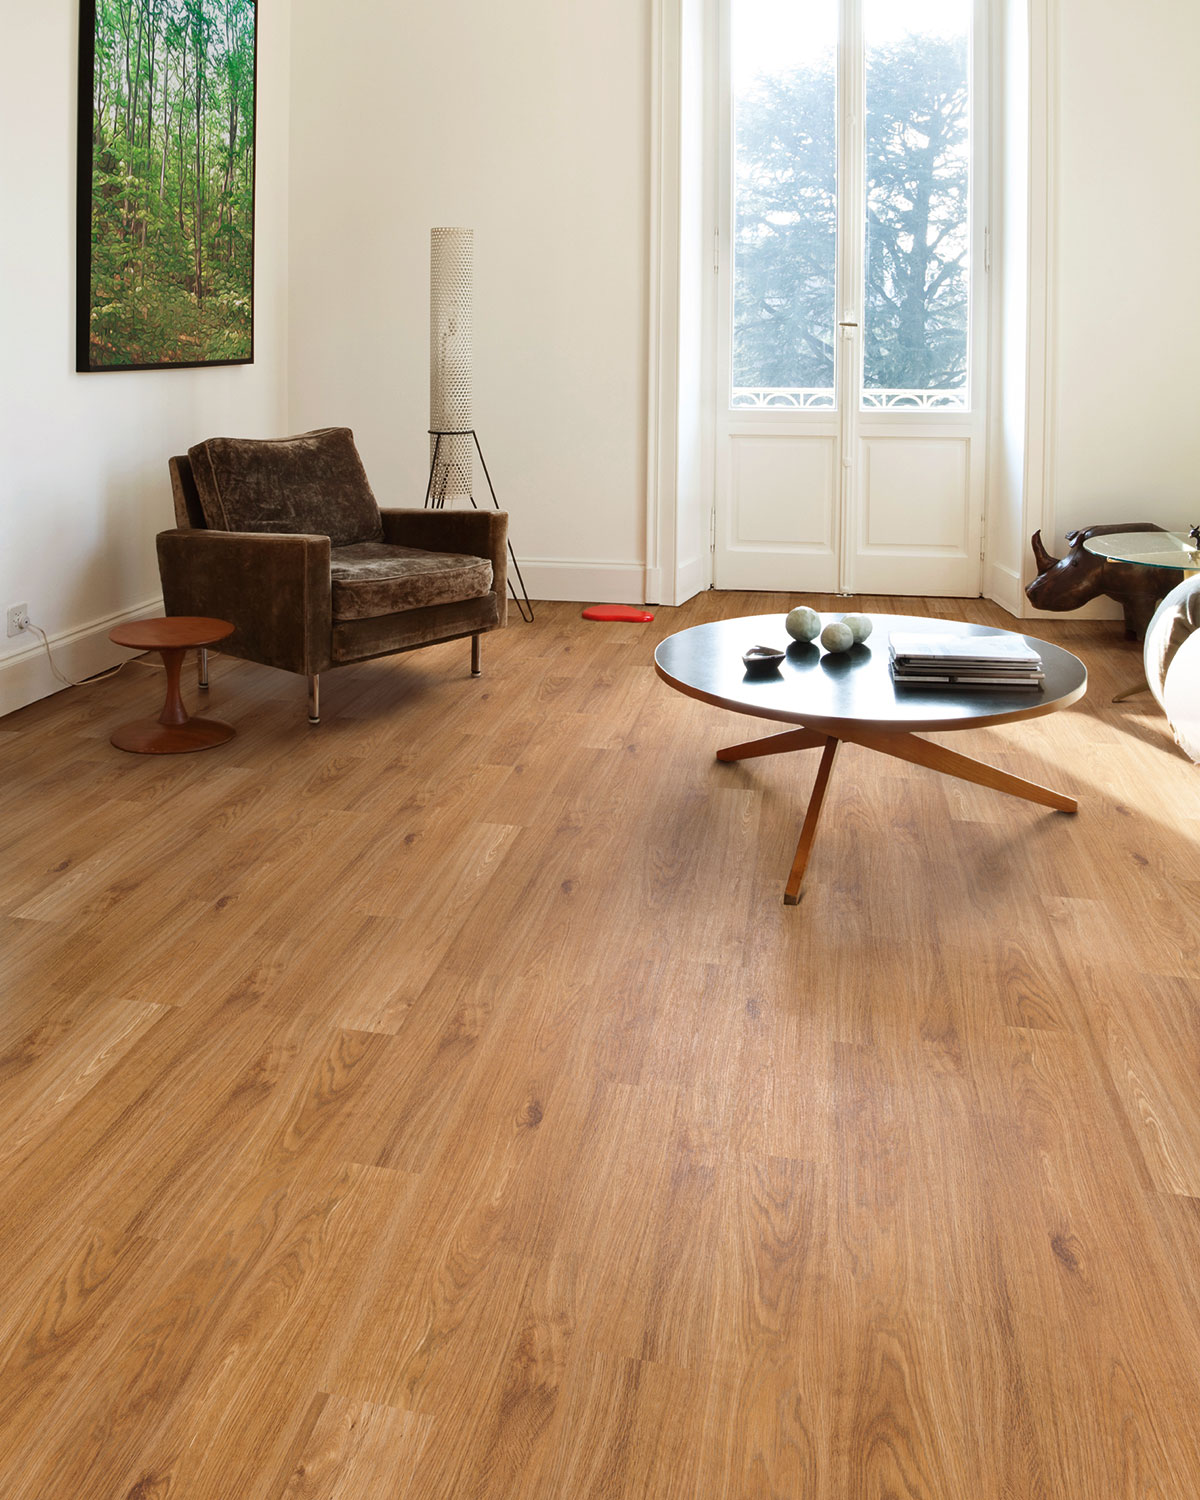 Boston Light Oak Vinyl Buy Direct With Remland Carpets